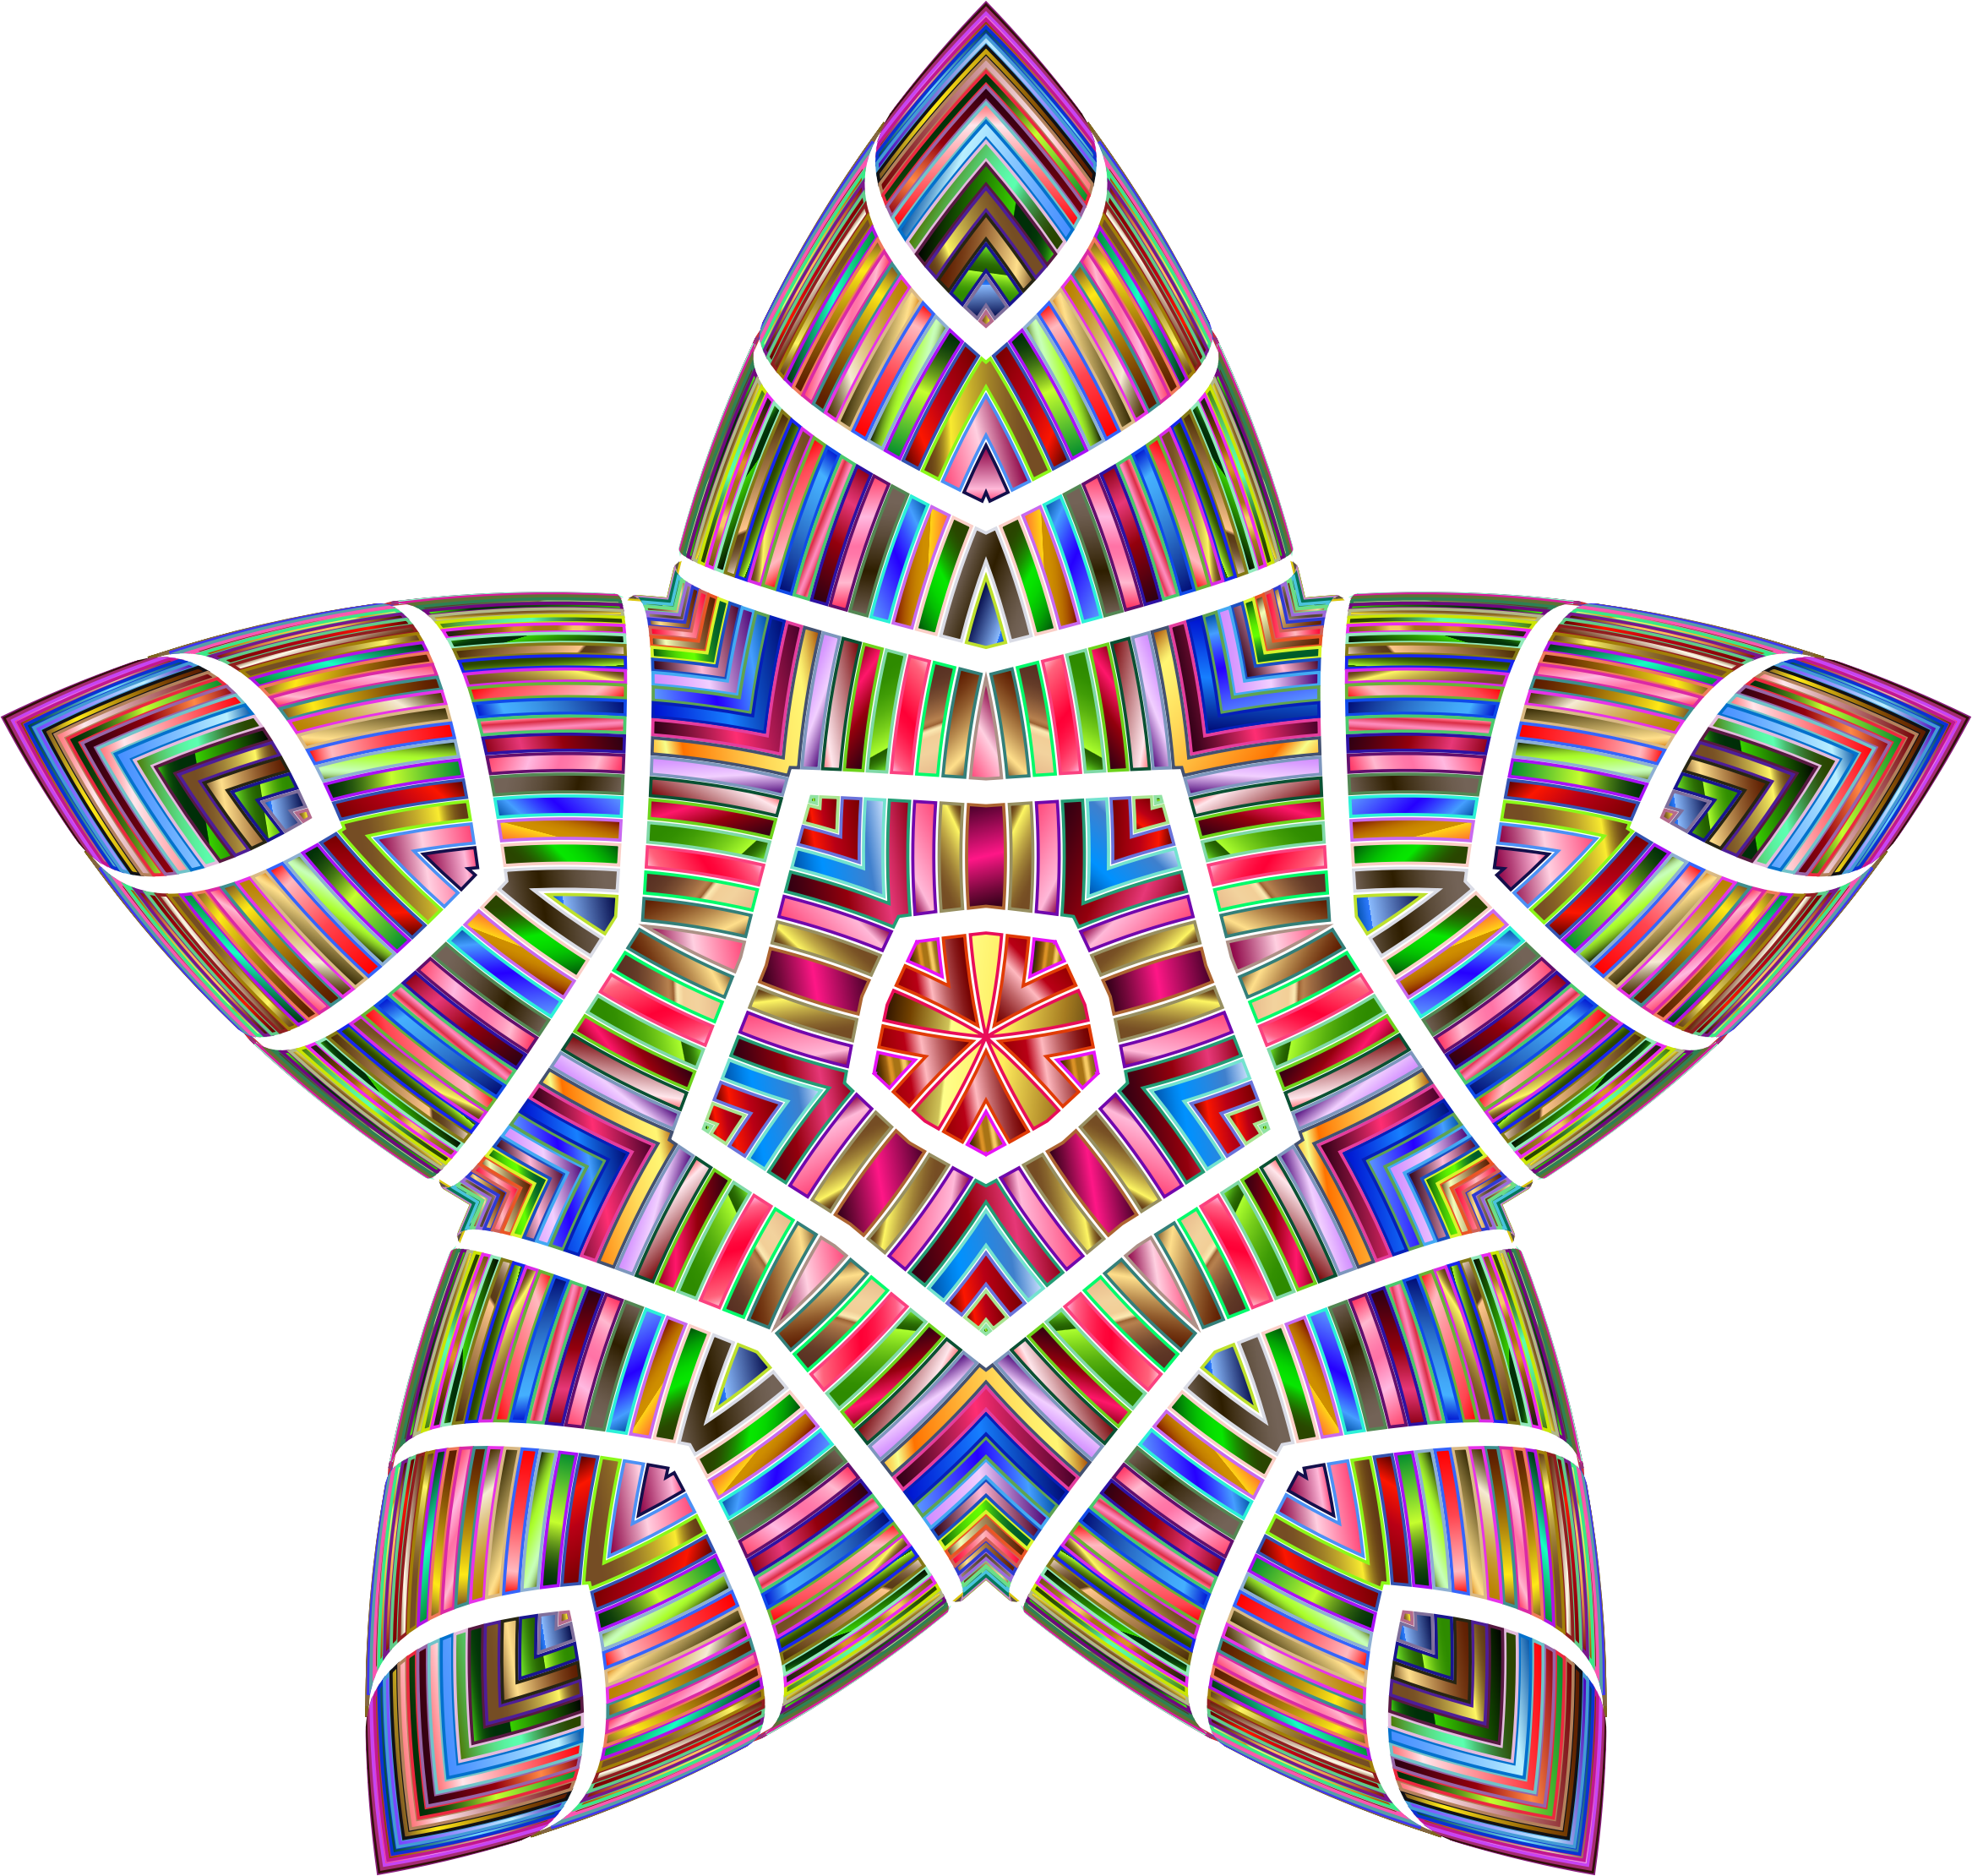 Chromatic Chubby Star by GDJ